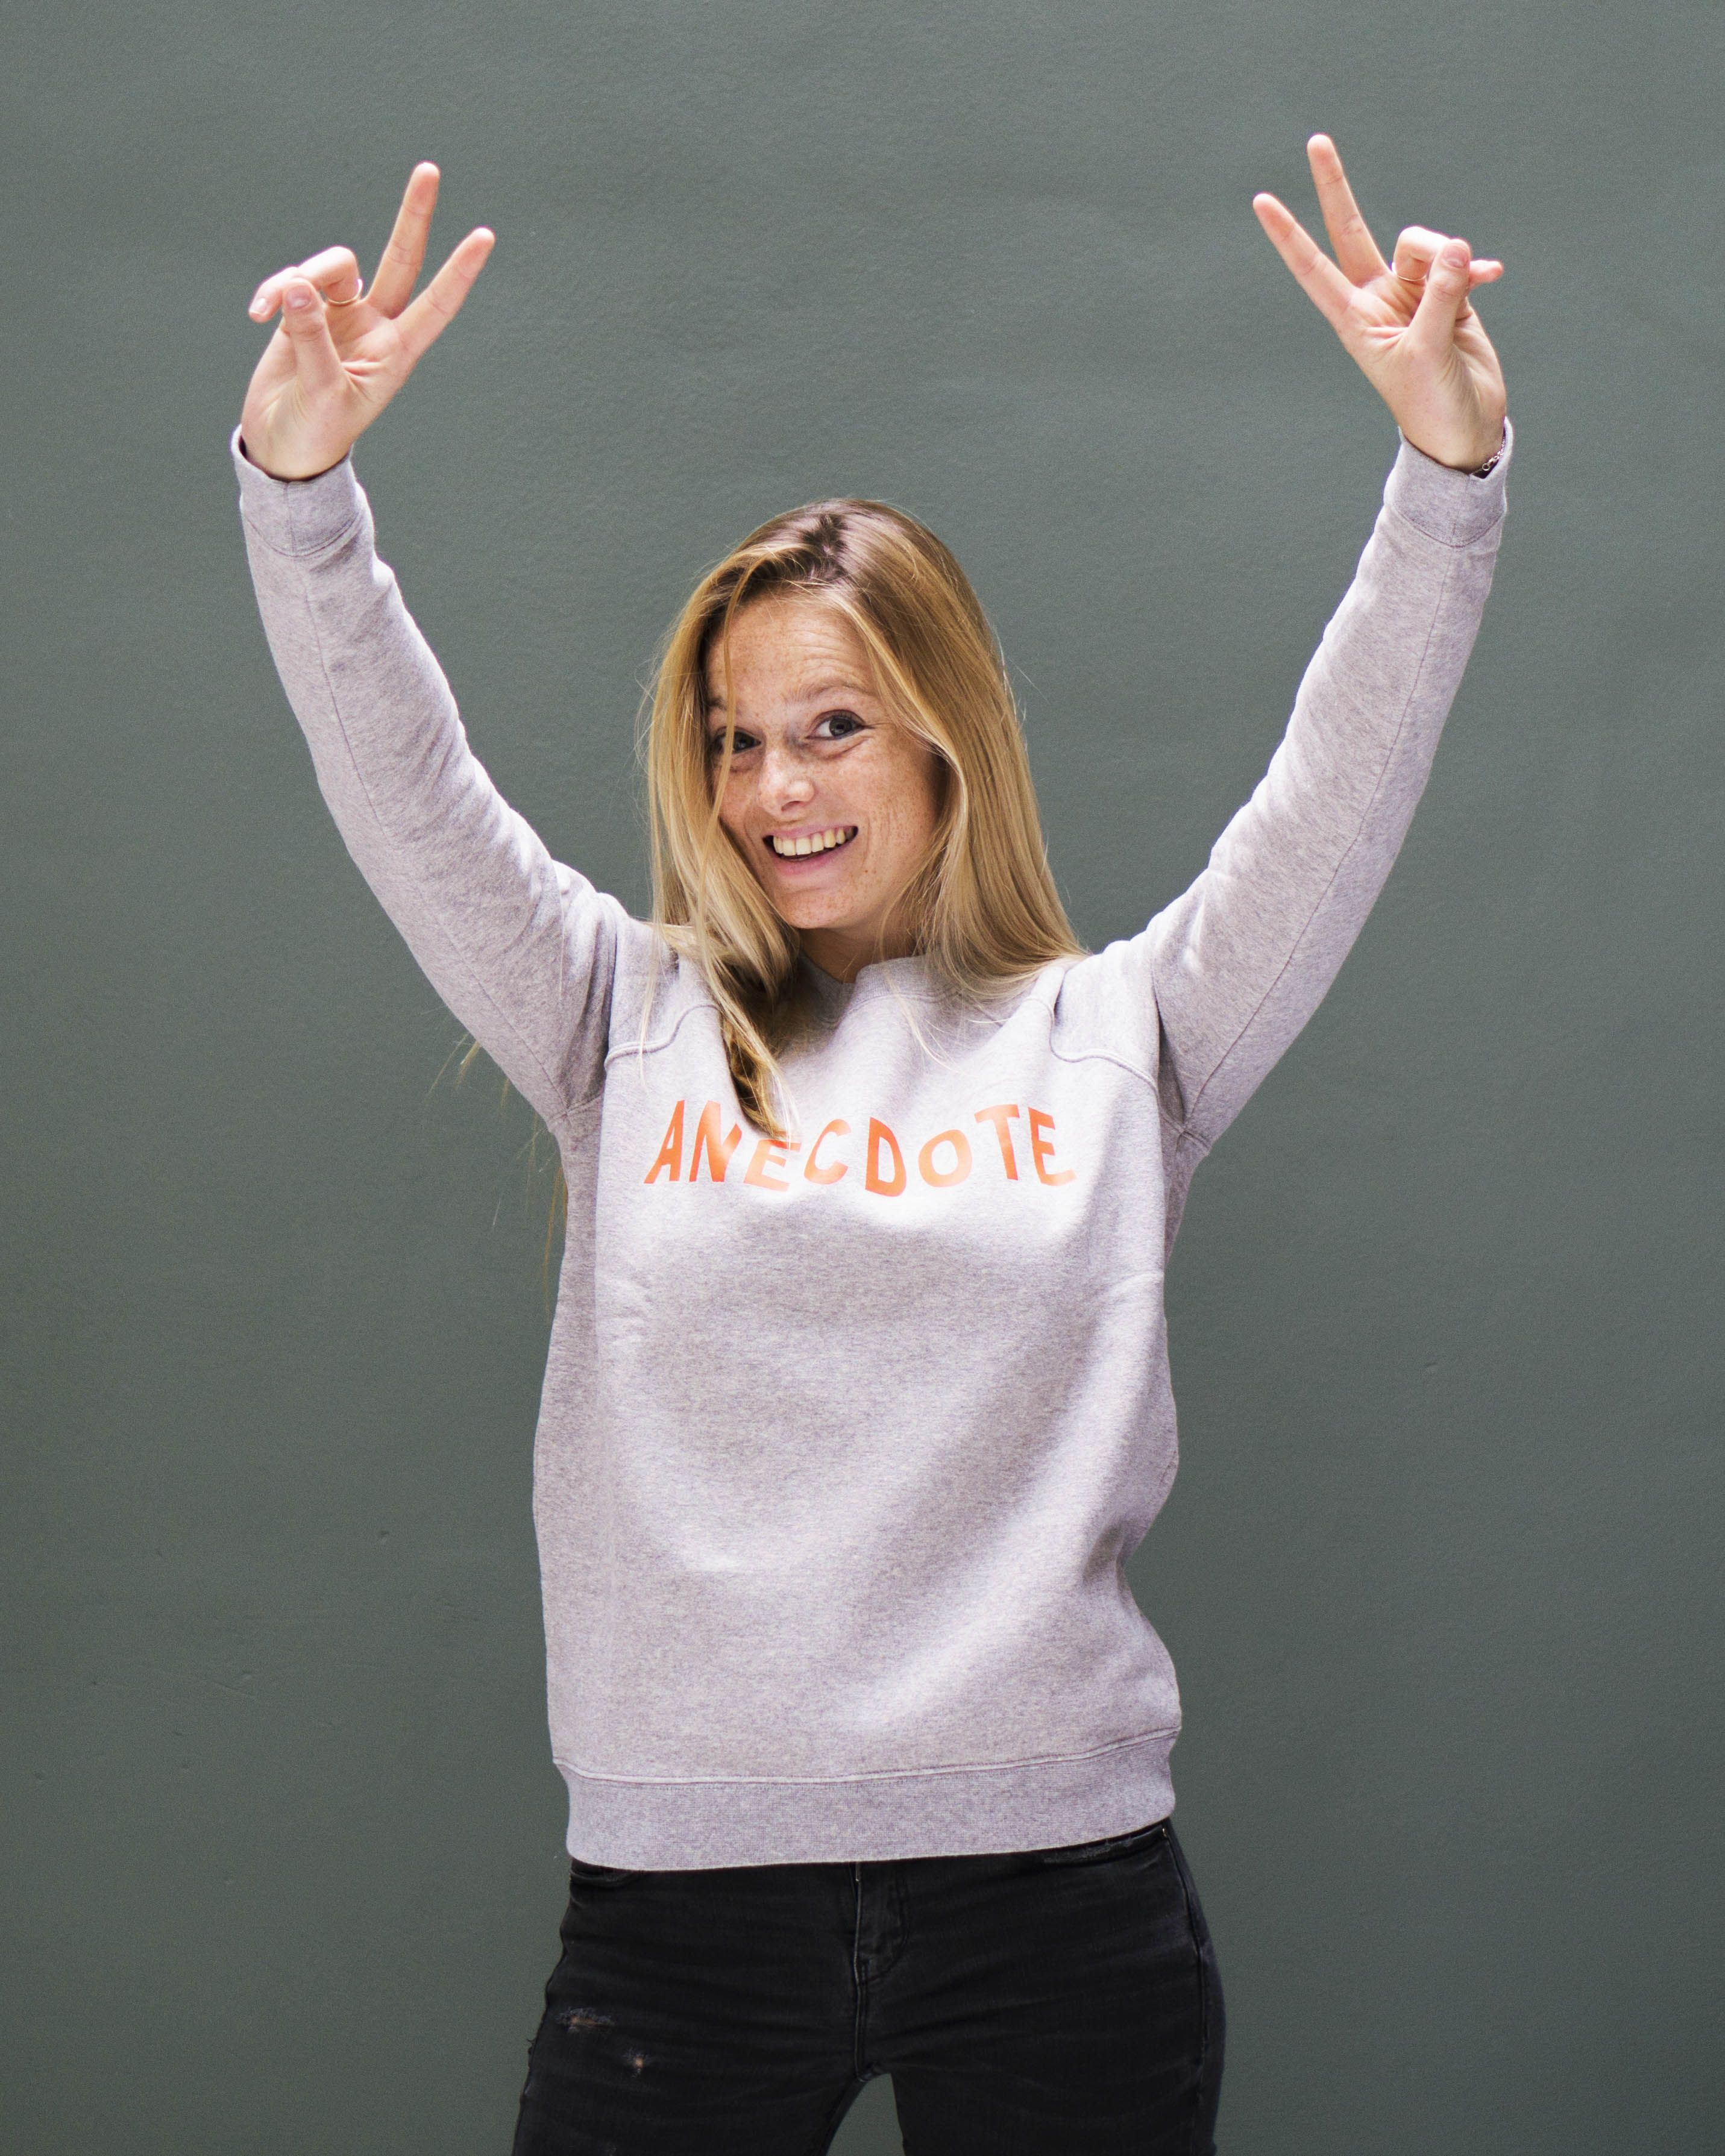 Introducing our Sales intern Gwen in the limited edition Kingsday sweater!